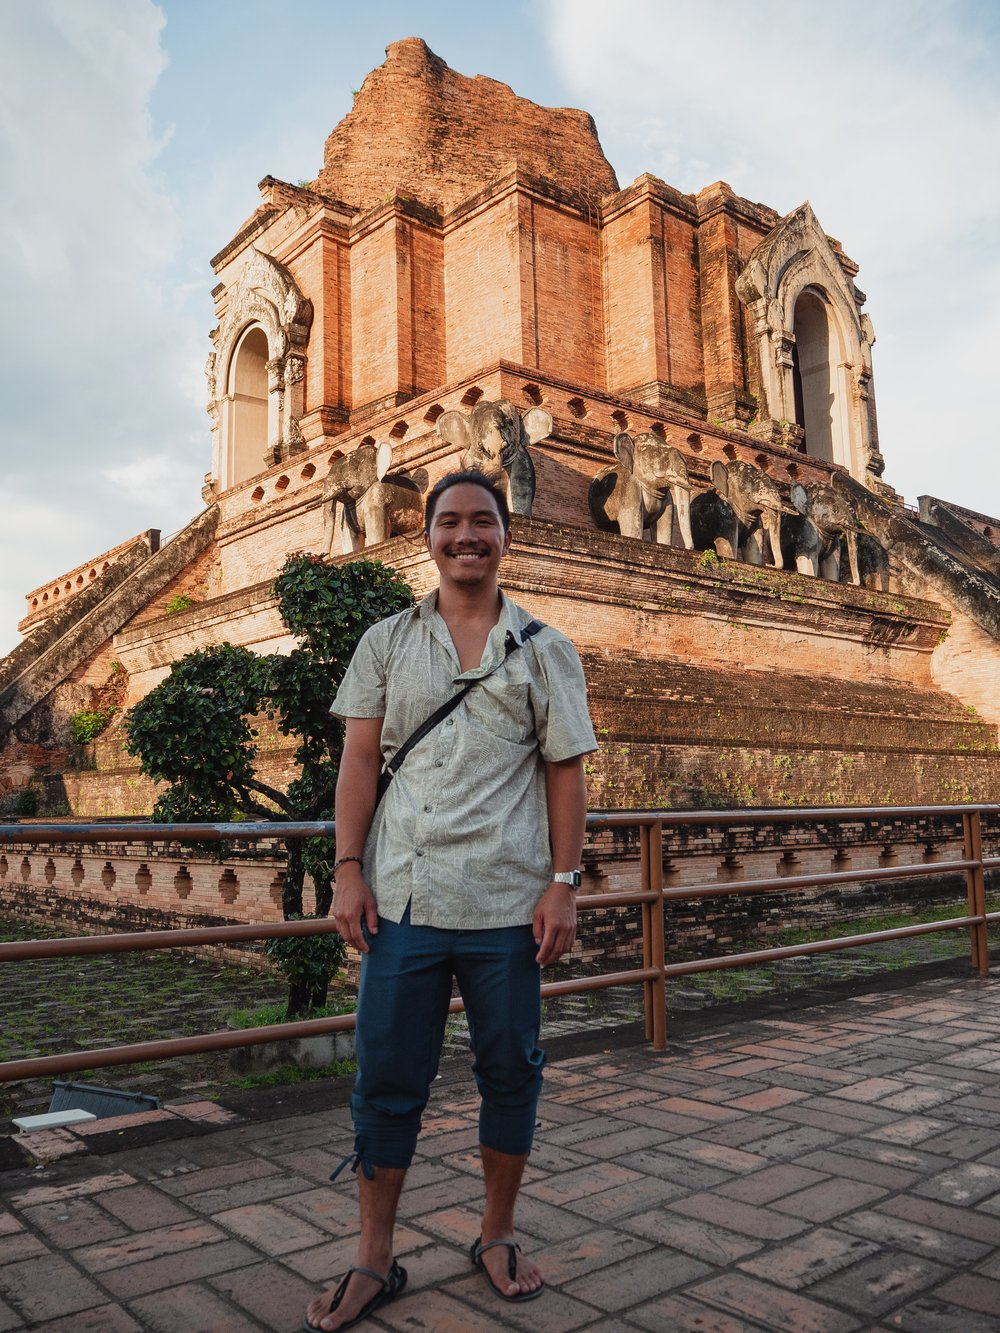 Top temples to visit in Chiang Mai, Wat Chedi Luang